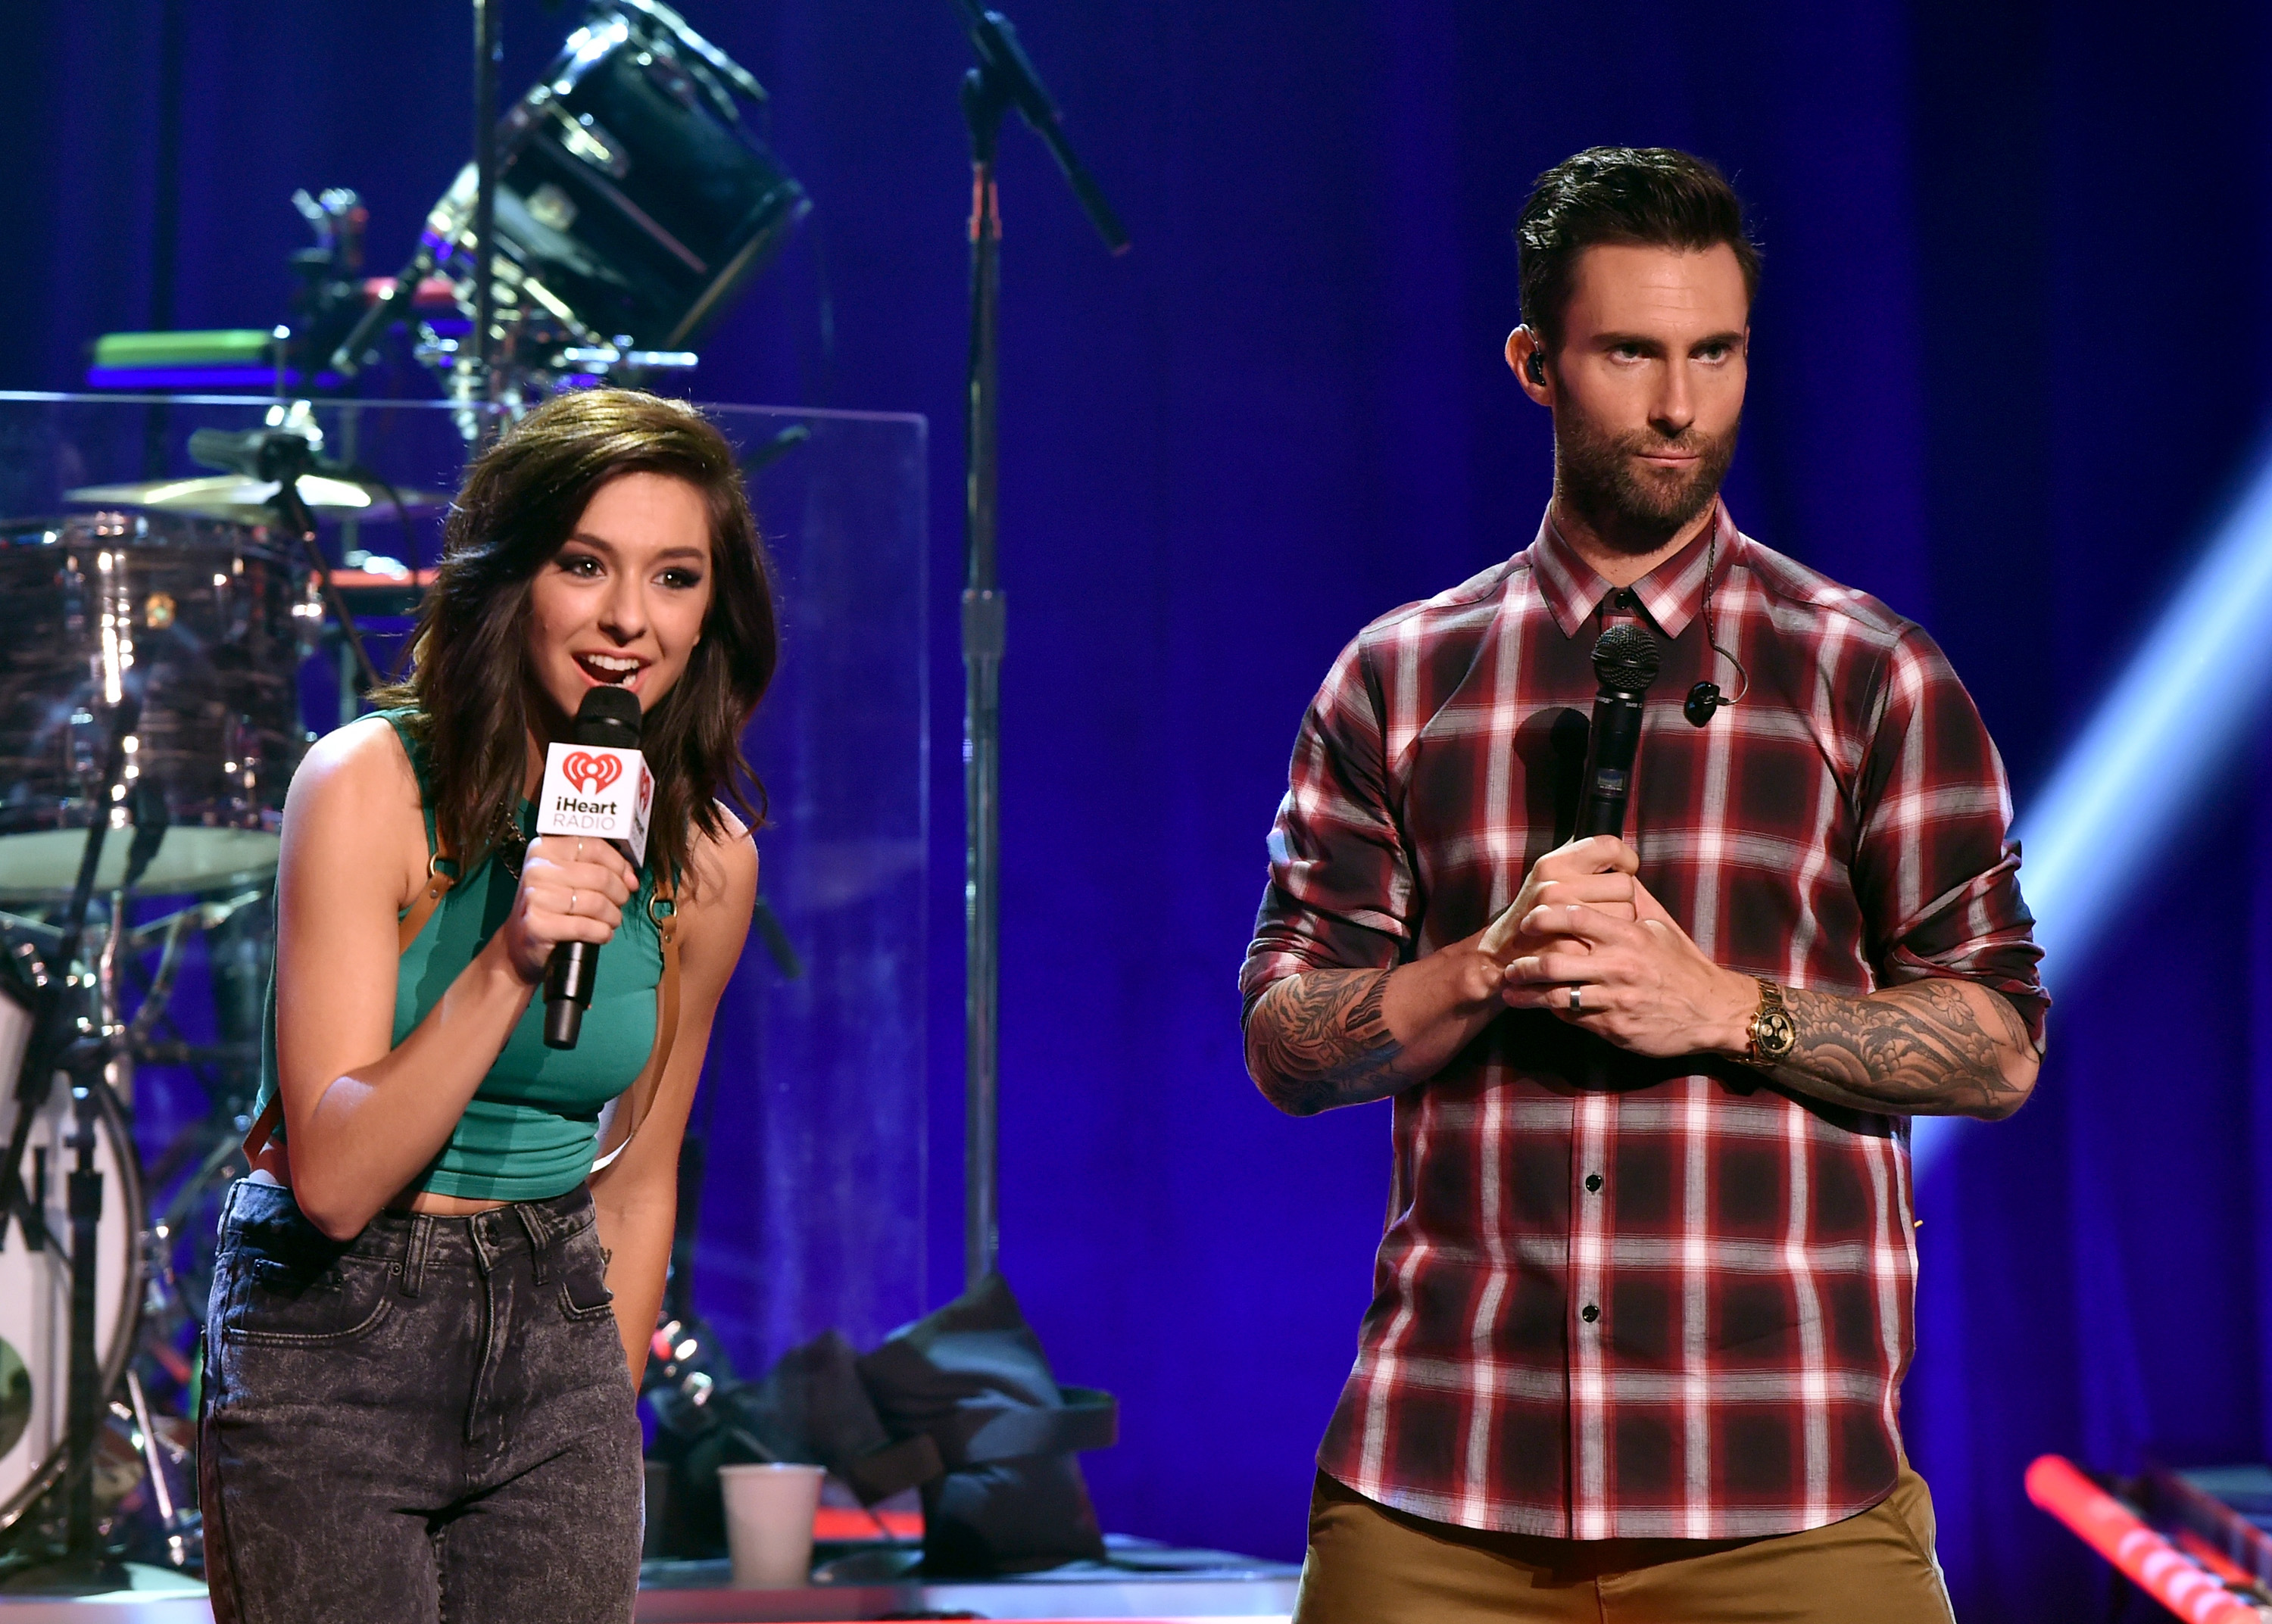 Adam levine offered to pay for christina grimmies funeral rolling adam levine christina grimmie stage together voice funeral pay m4hsunfo